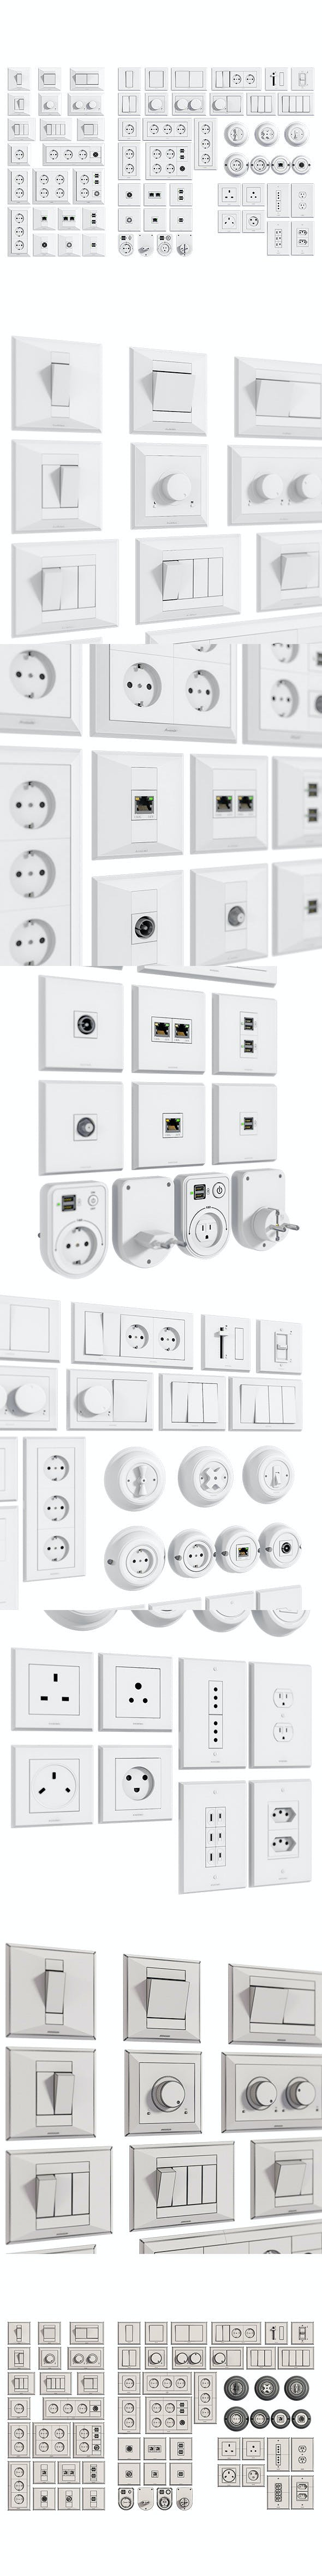 L3DV06G01 - electrical wall switches and sockets set - 3DOcean Item for Sale